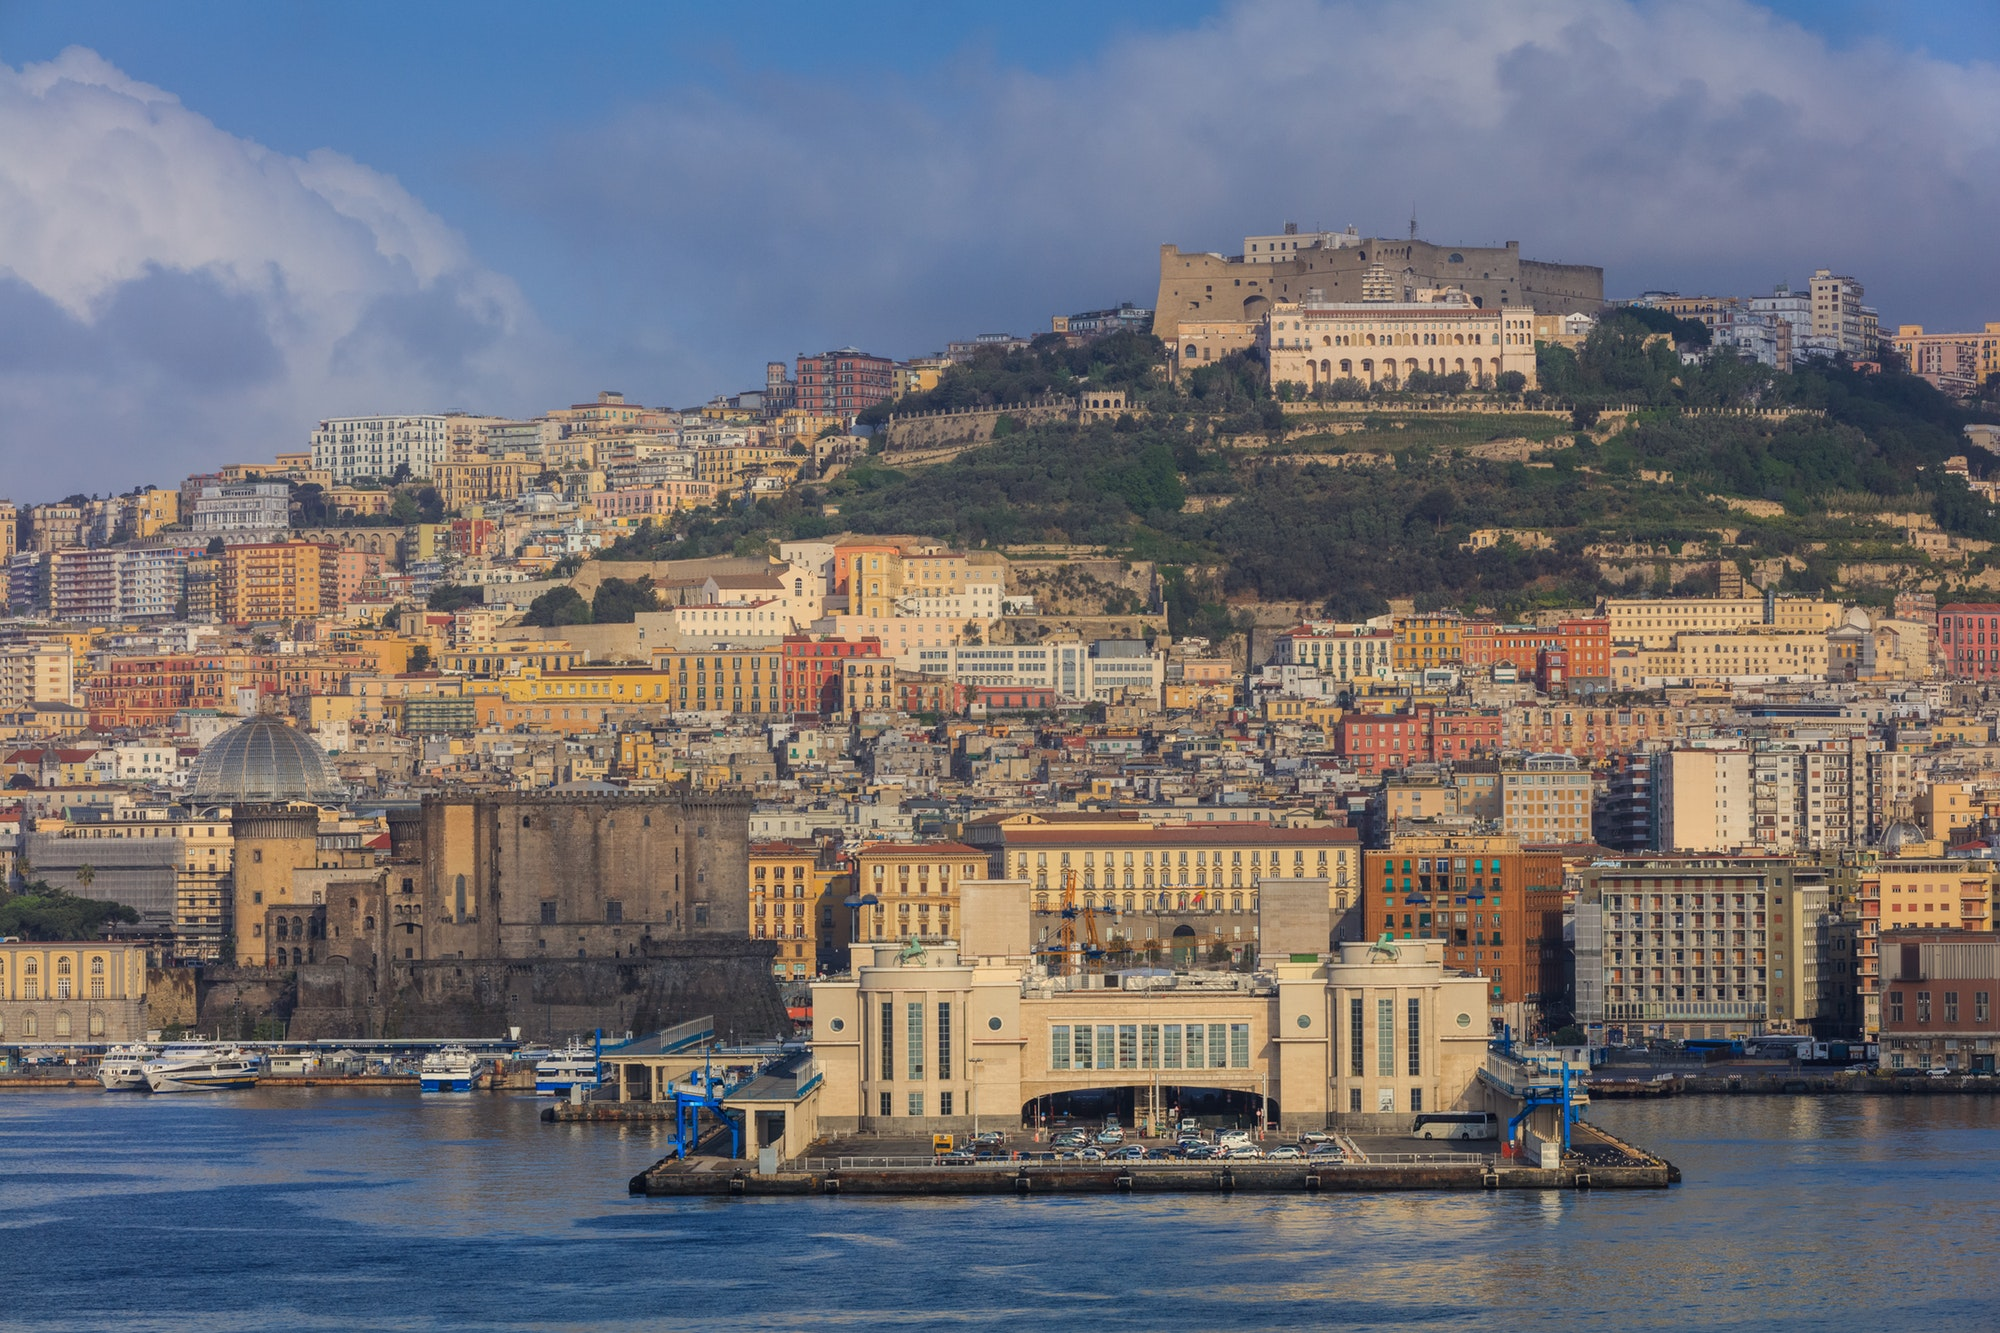 Port of Naples, Italy